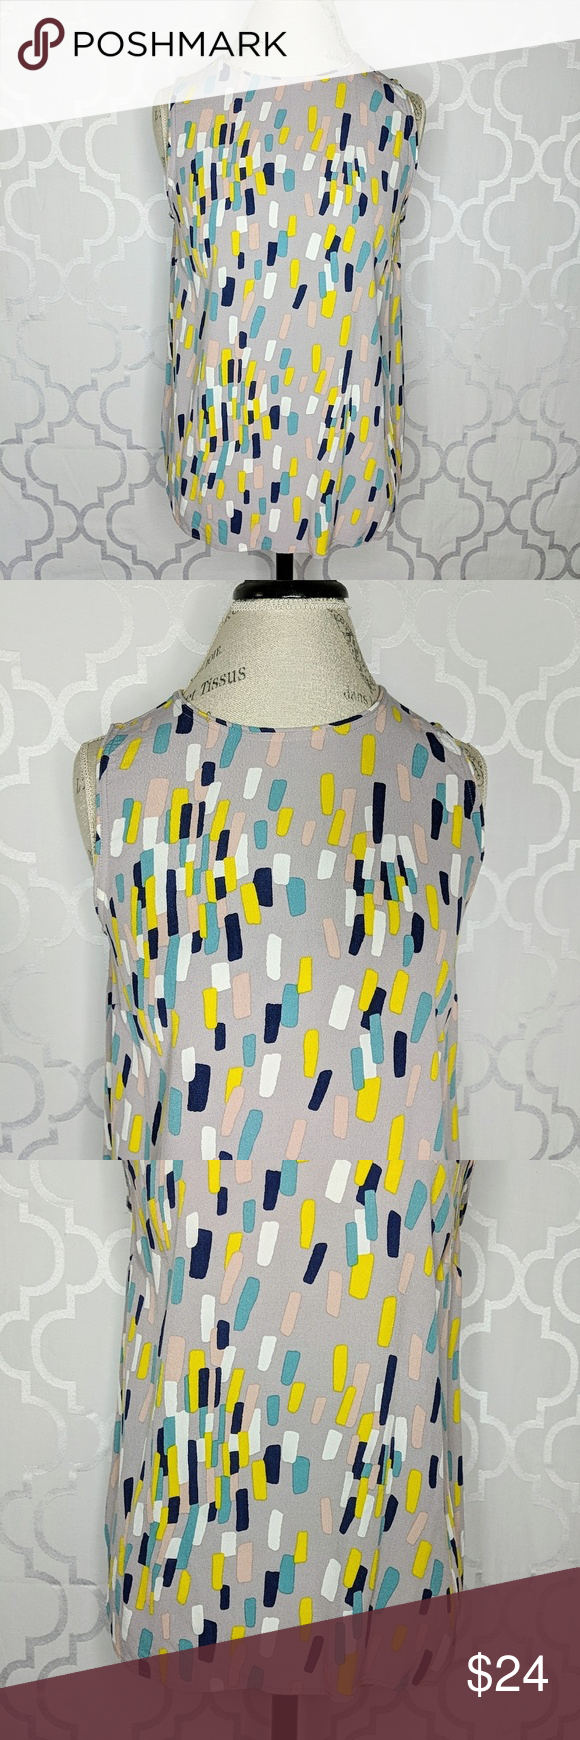 3ef0e75550c387 Boden Abstract Print Top Boden lavandería with a multicolored abstract  print sleeveless blouse. Darts at